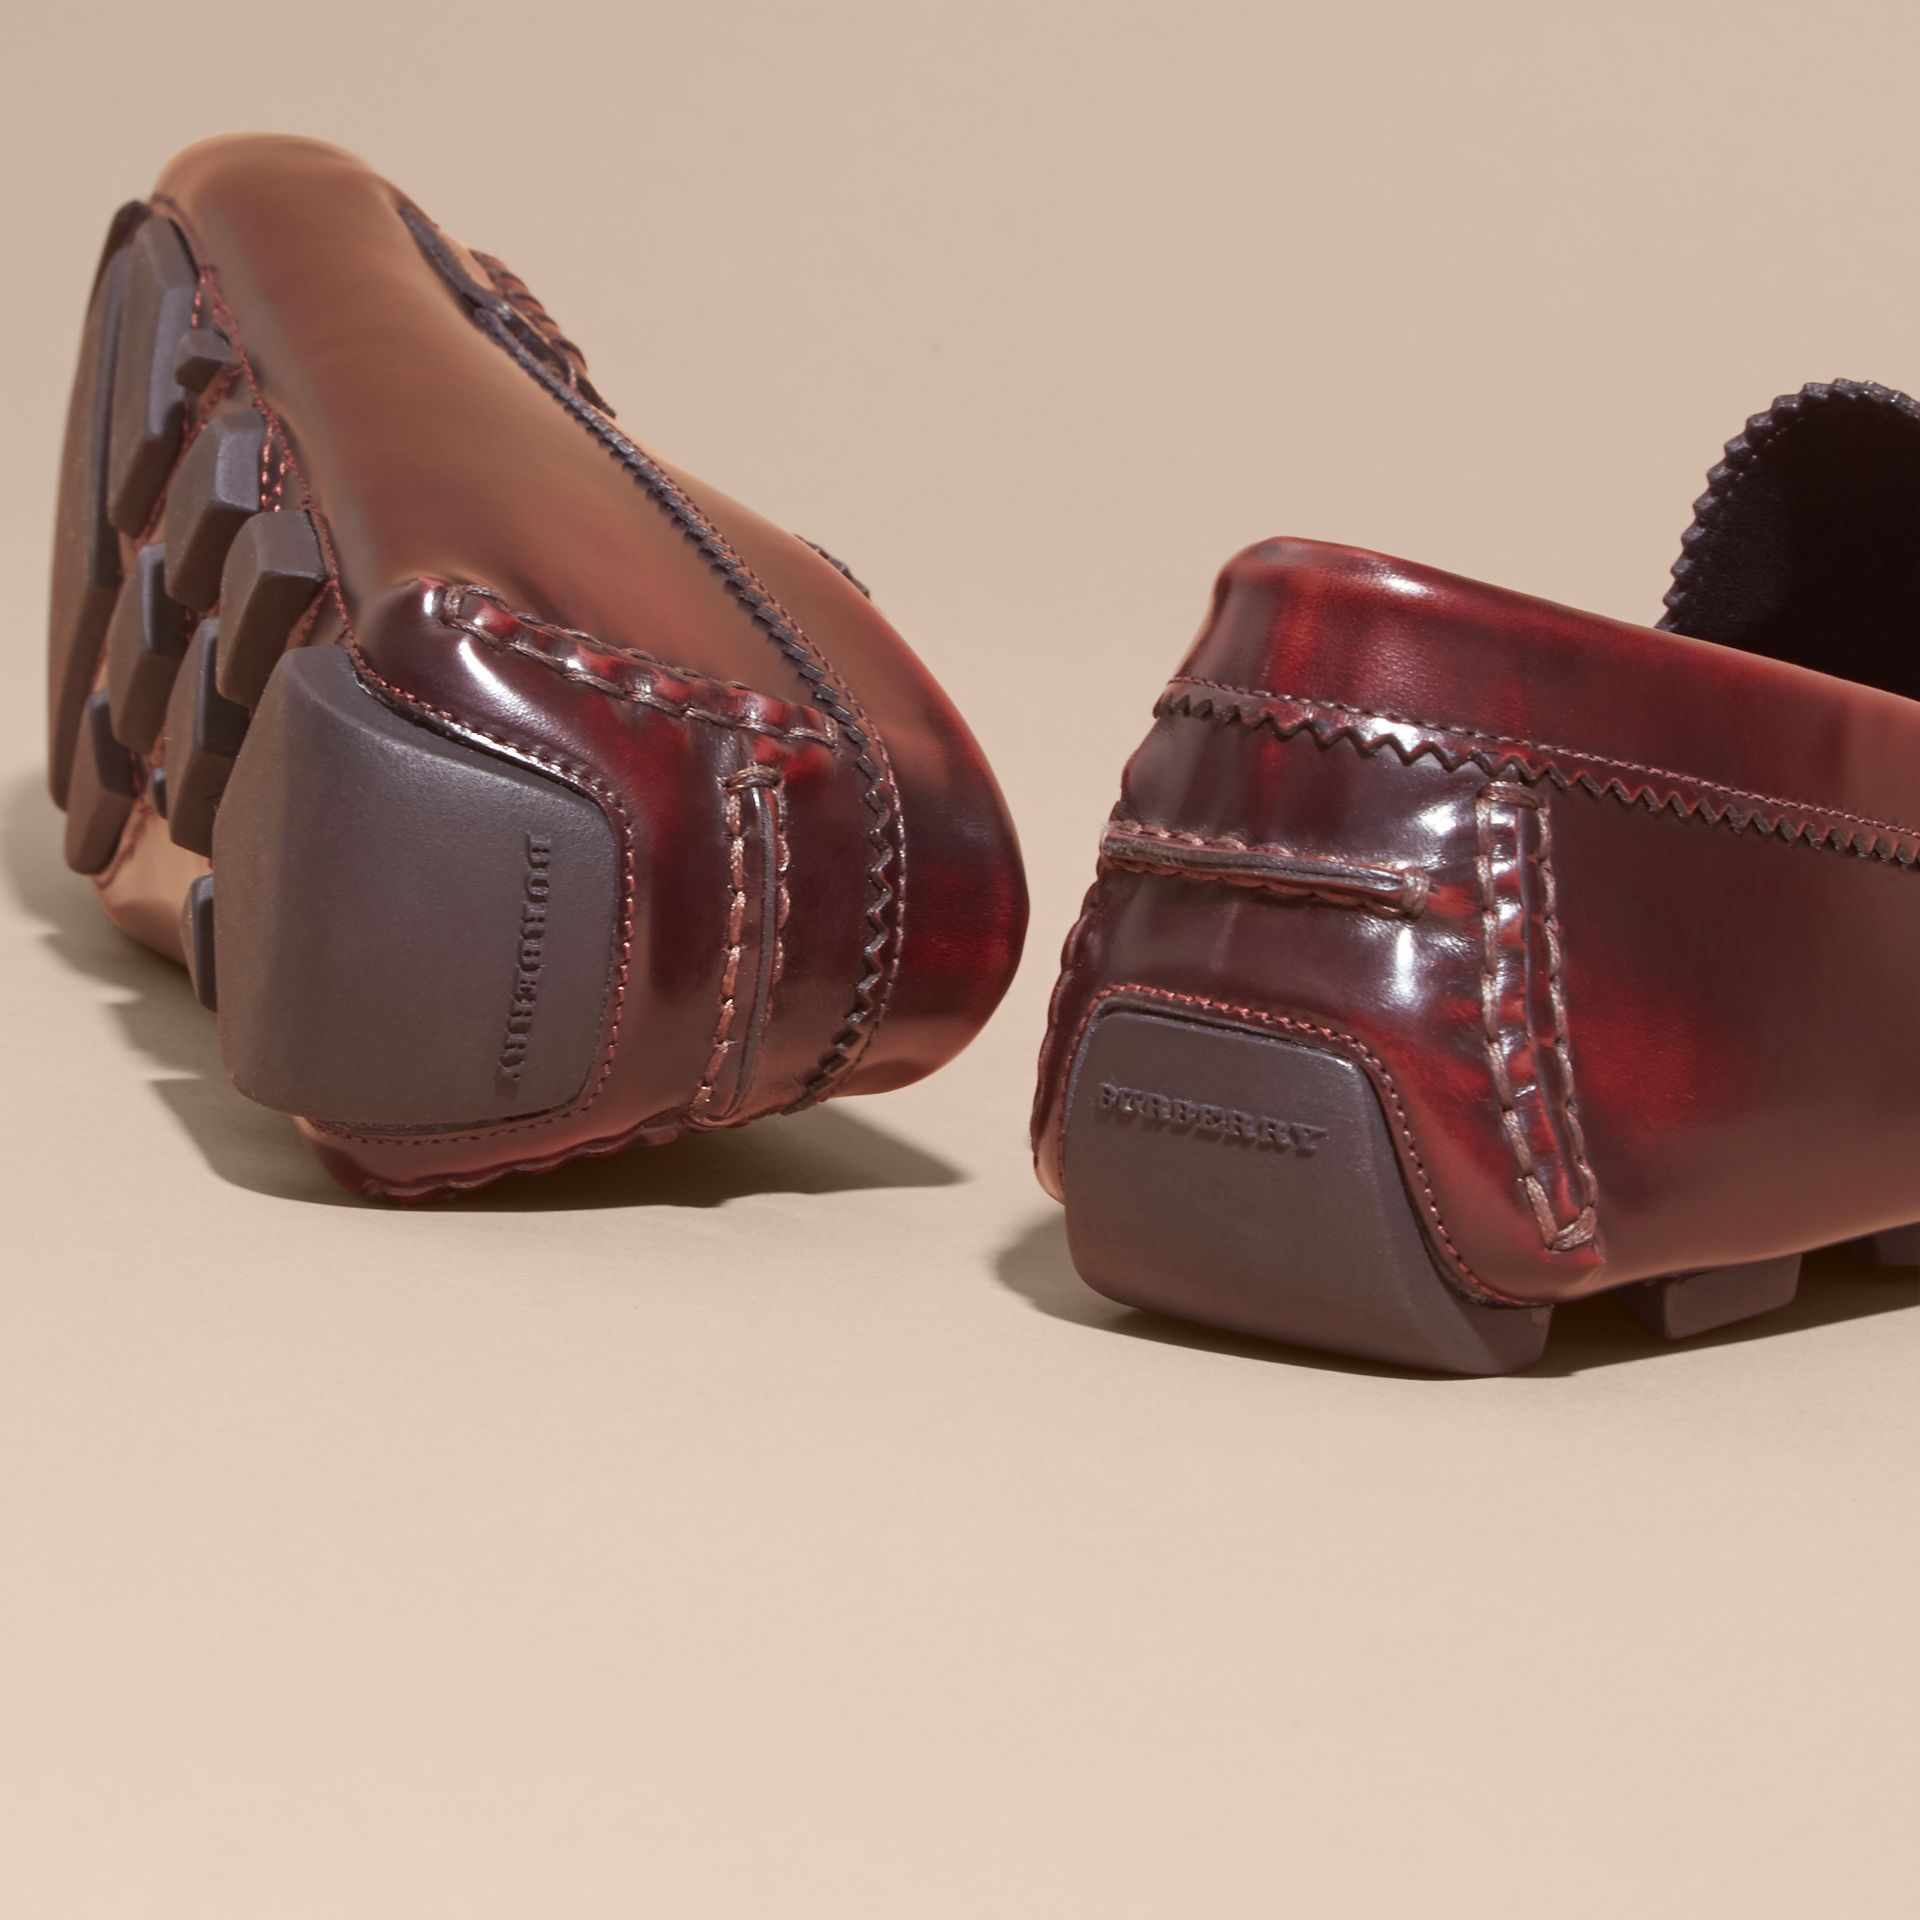 Tasselled Polished Leather Loafers in Bordeaux - gallery image 4